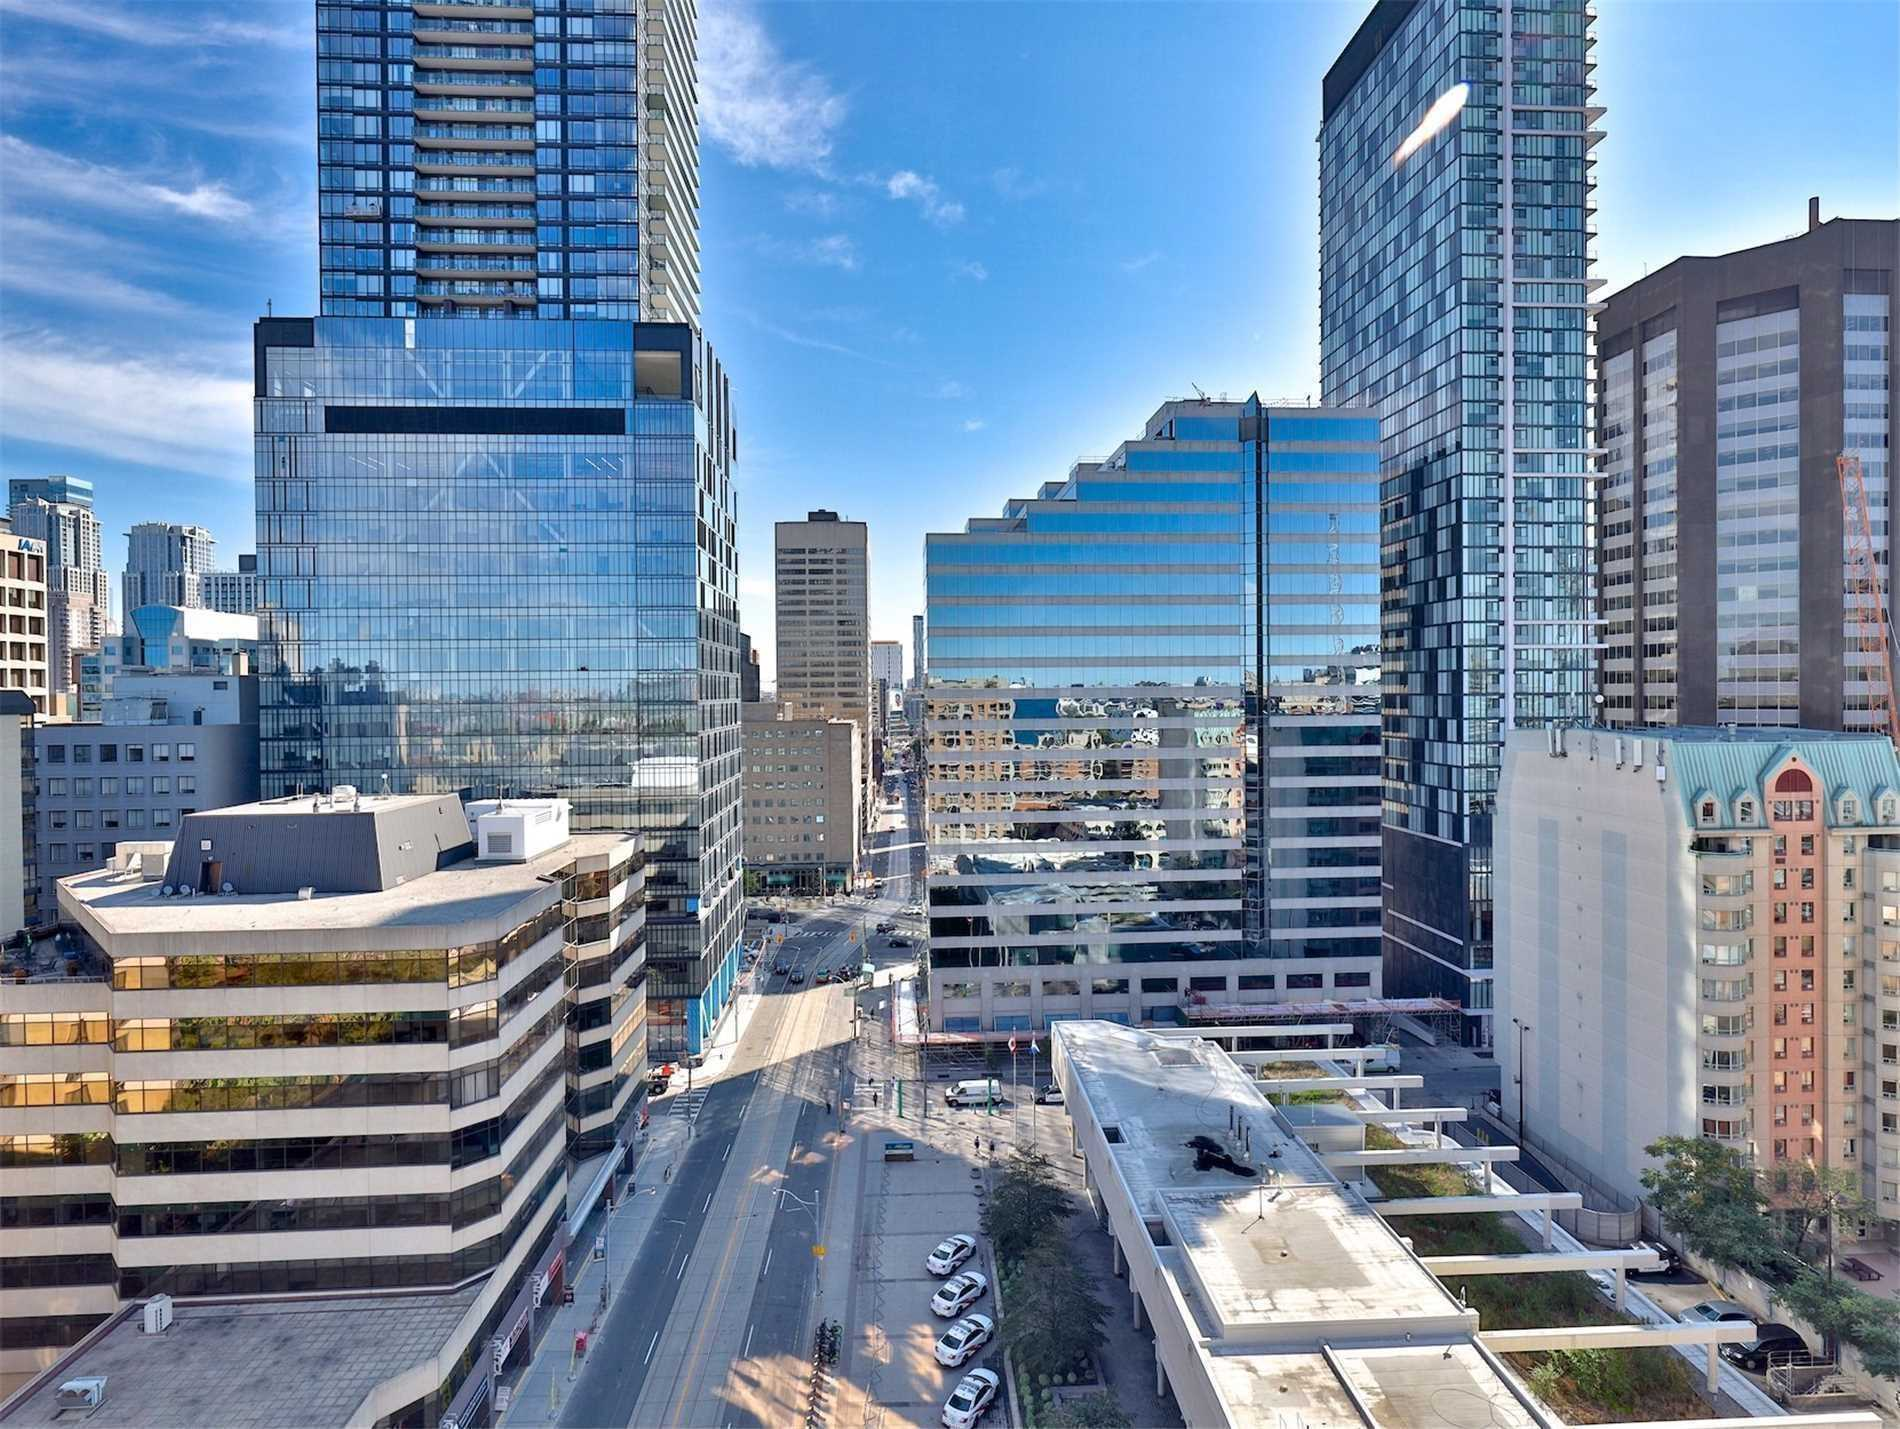 152 St Patrick St, Toronto, Ontario M5T1V1, 2 Bedrooms Bedrooms, 6 Rooms Rooms,3 BathroomsBathrooms,Condo Apt,For Sale,St Patrick,C4976075